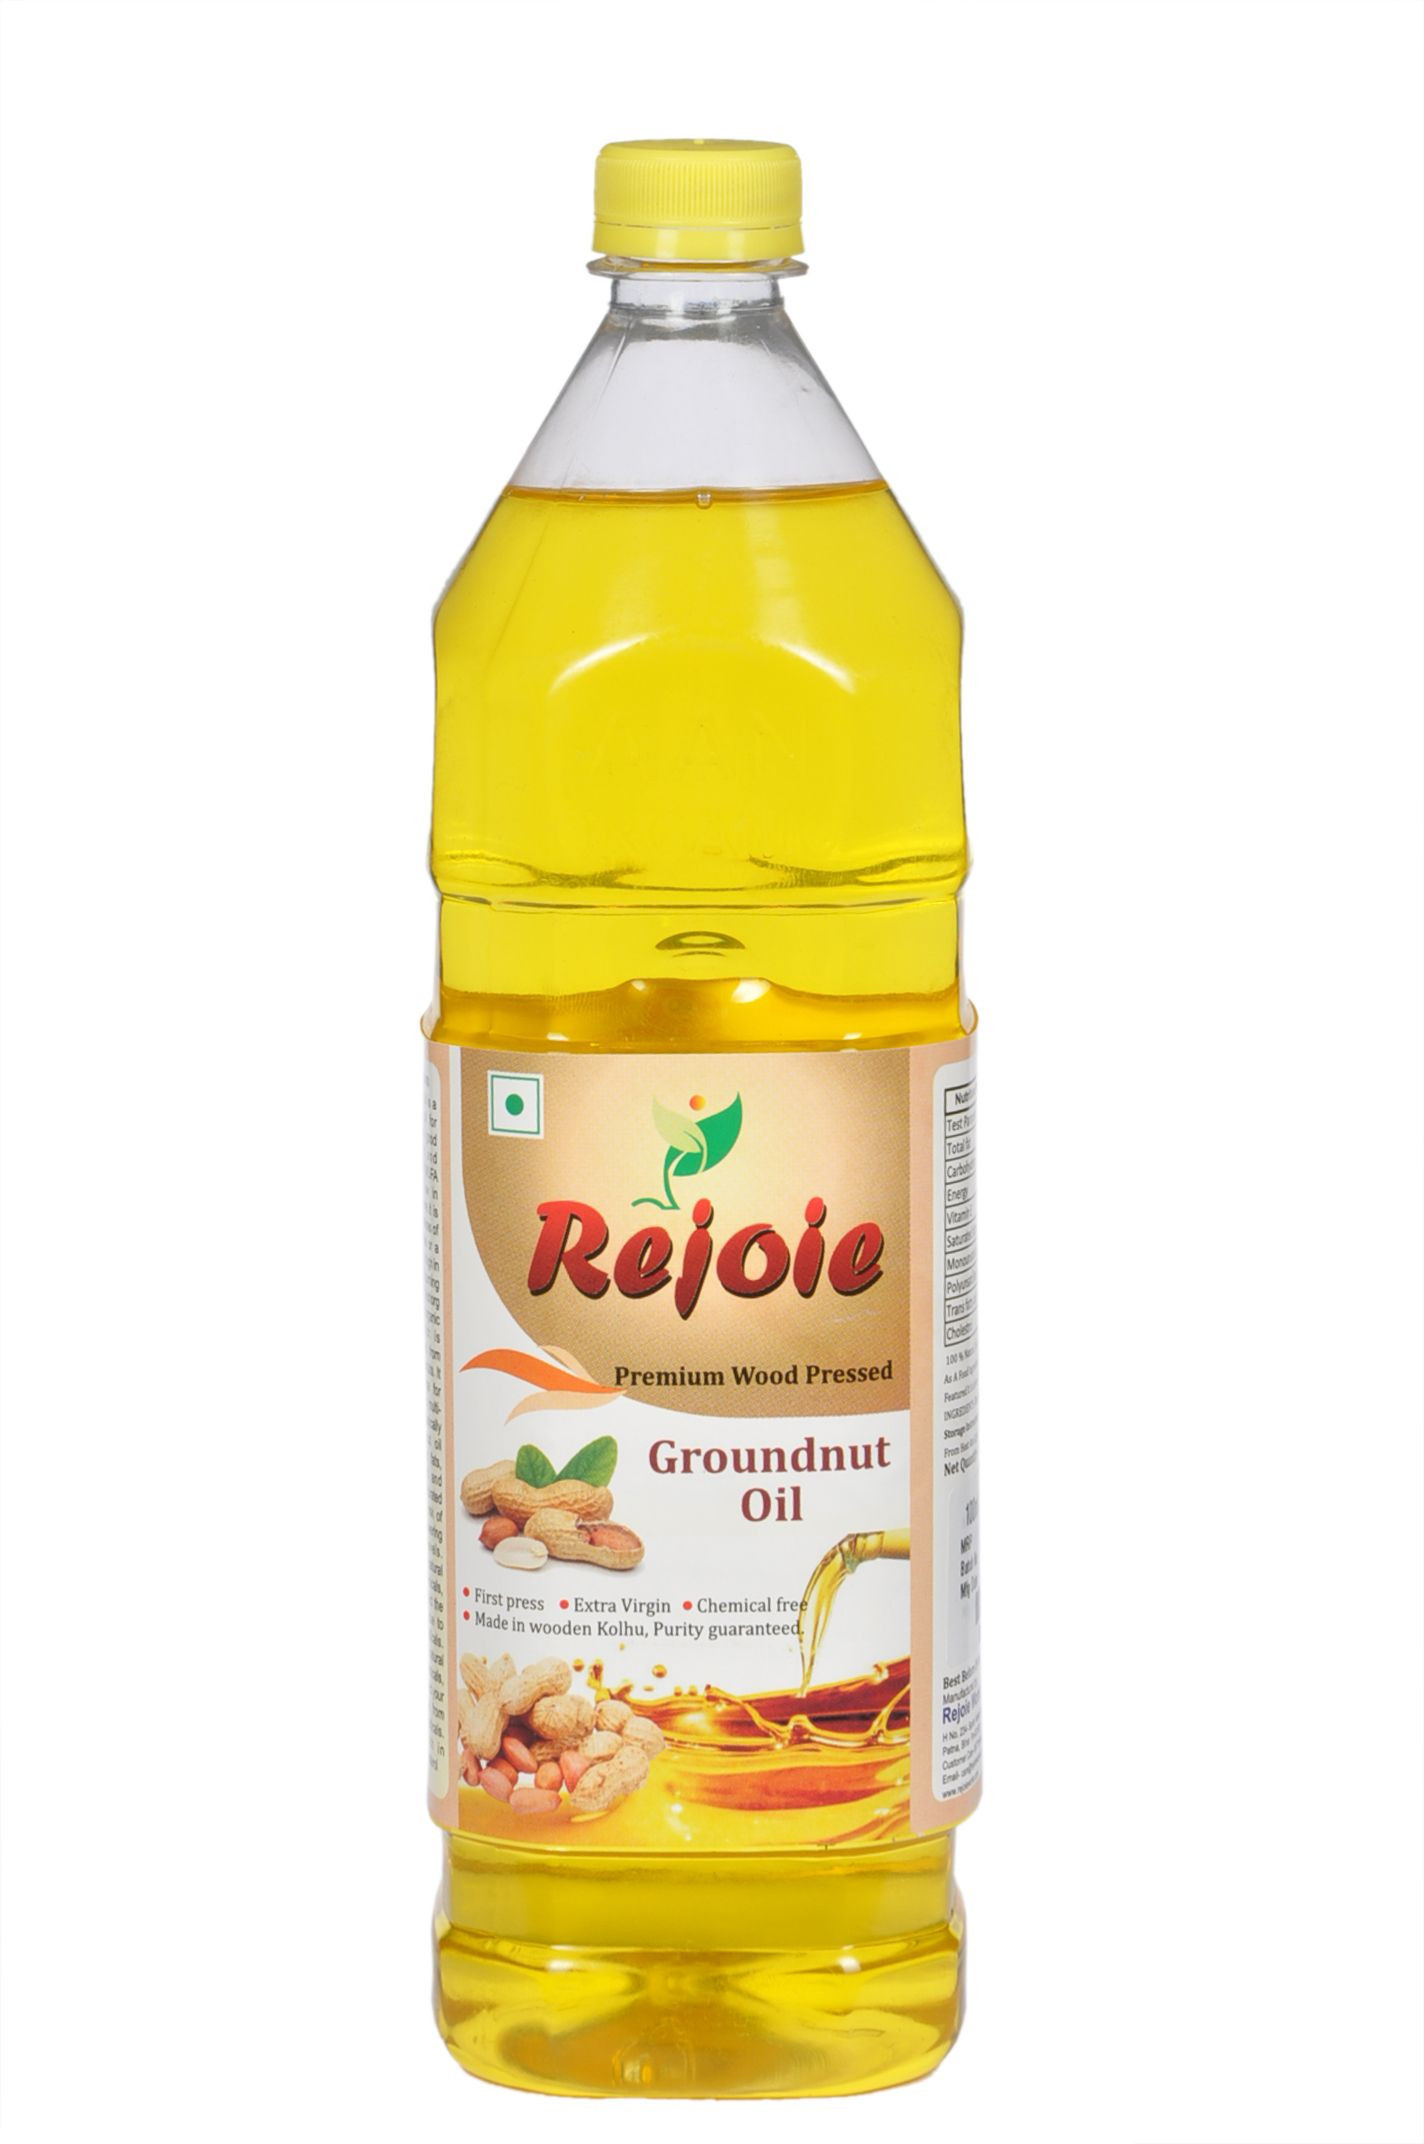 Extra Virgin Cold pressed Groundnut Oil